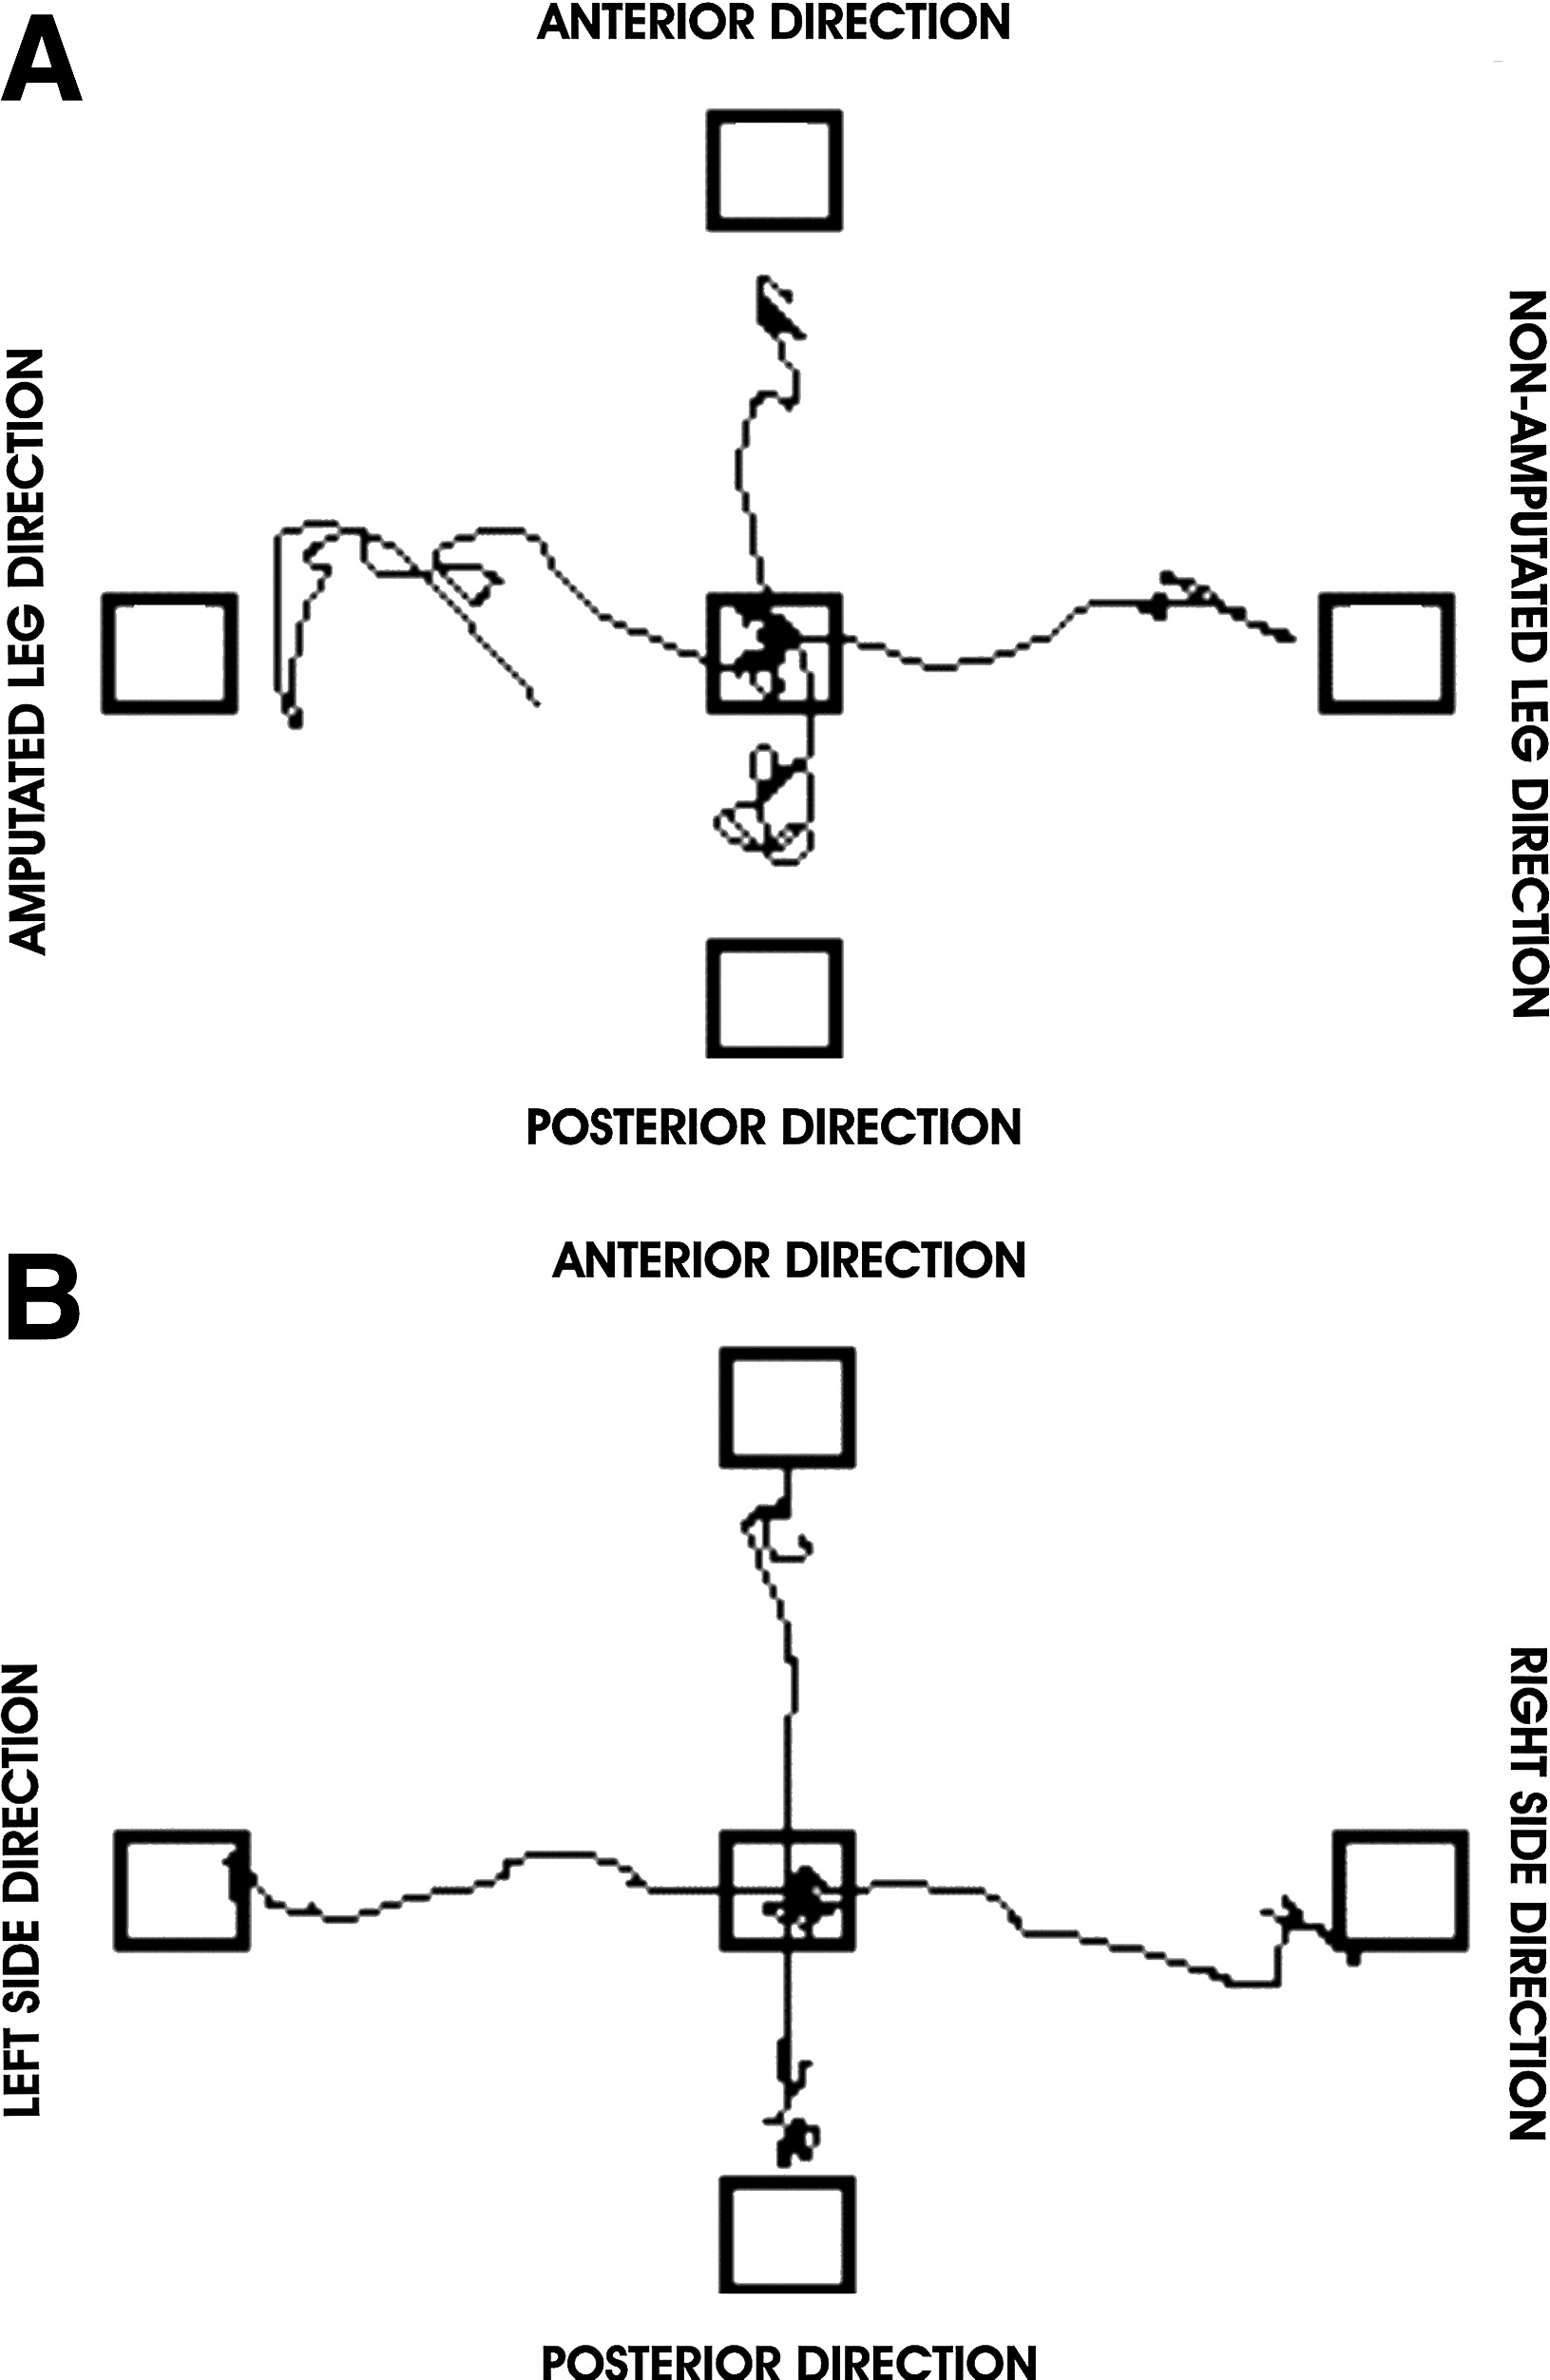 Limits of Stability in Persons With Transtibial Amputation